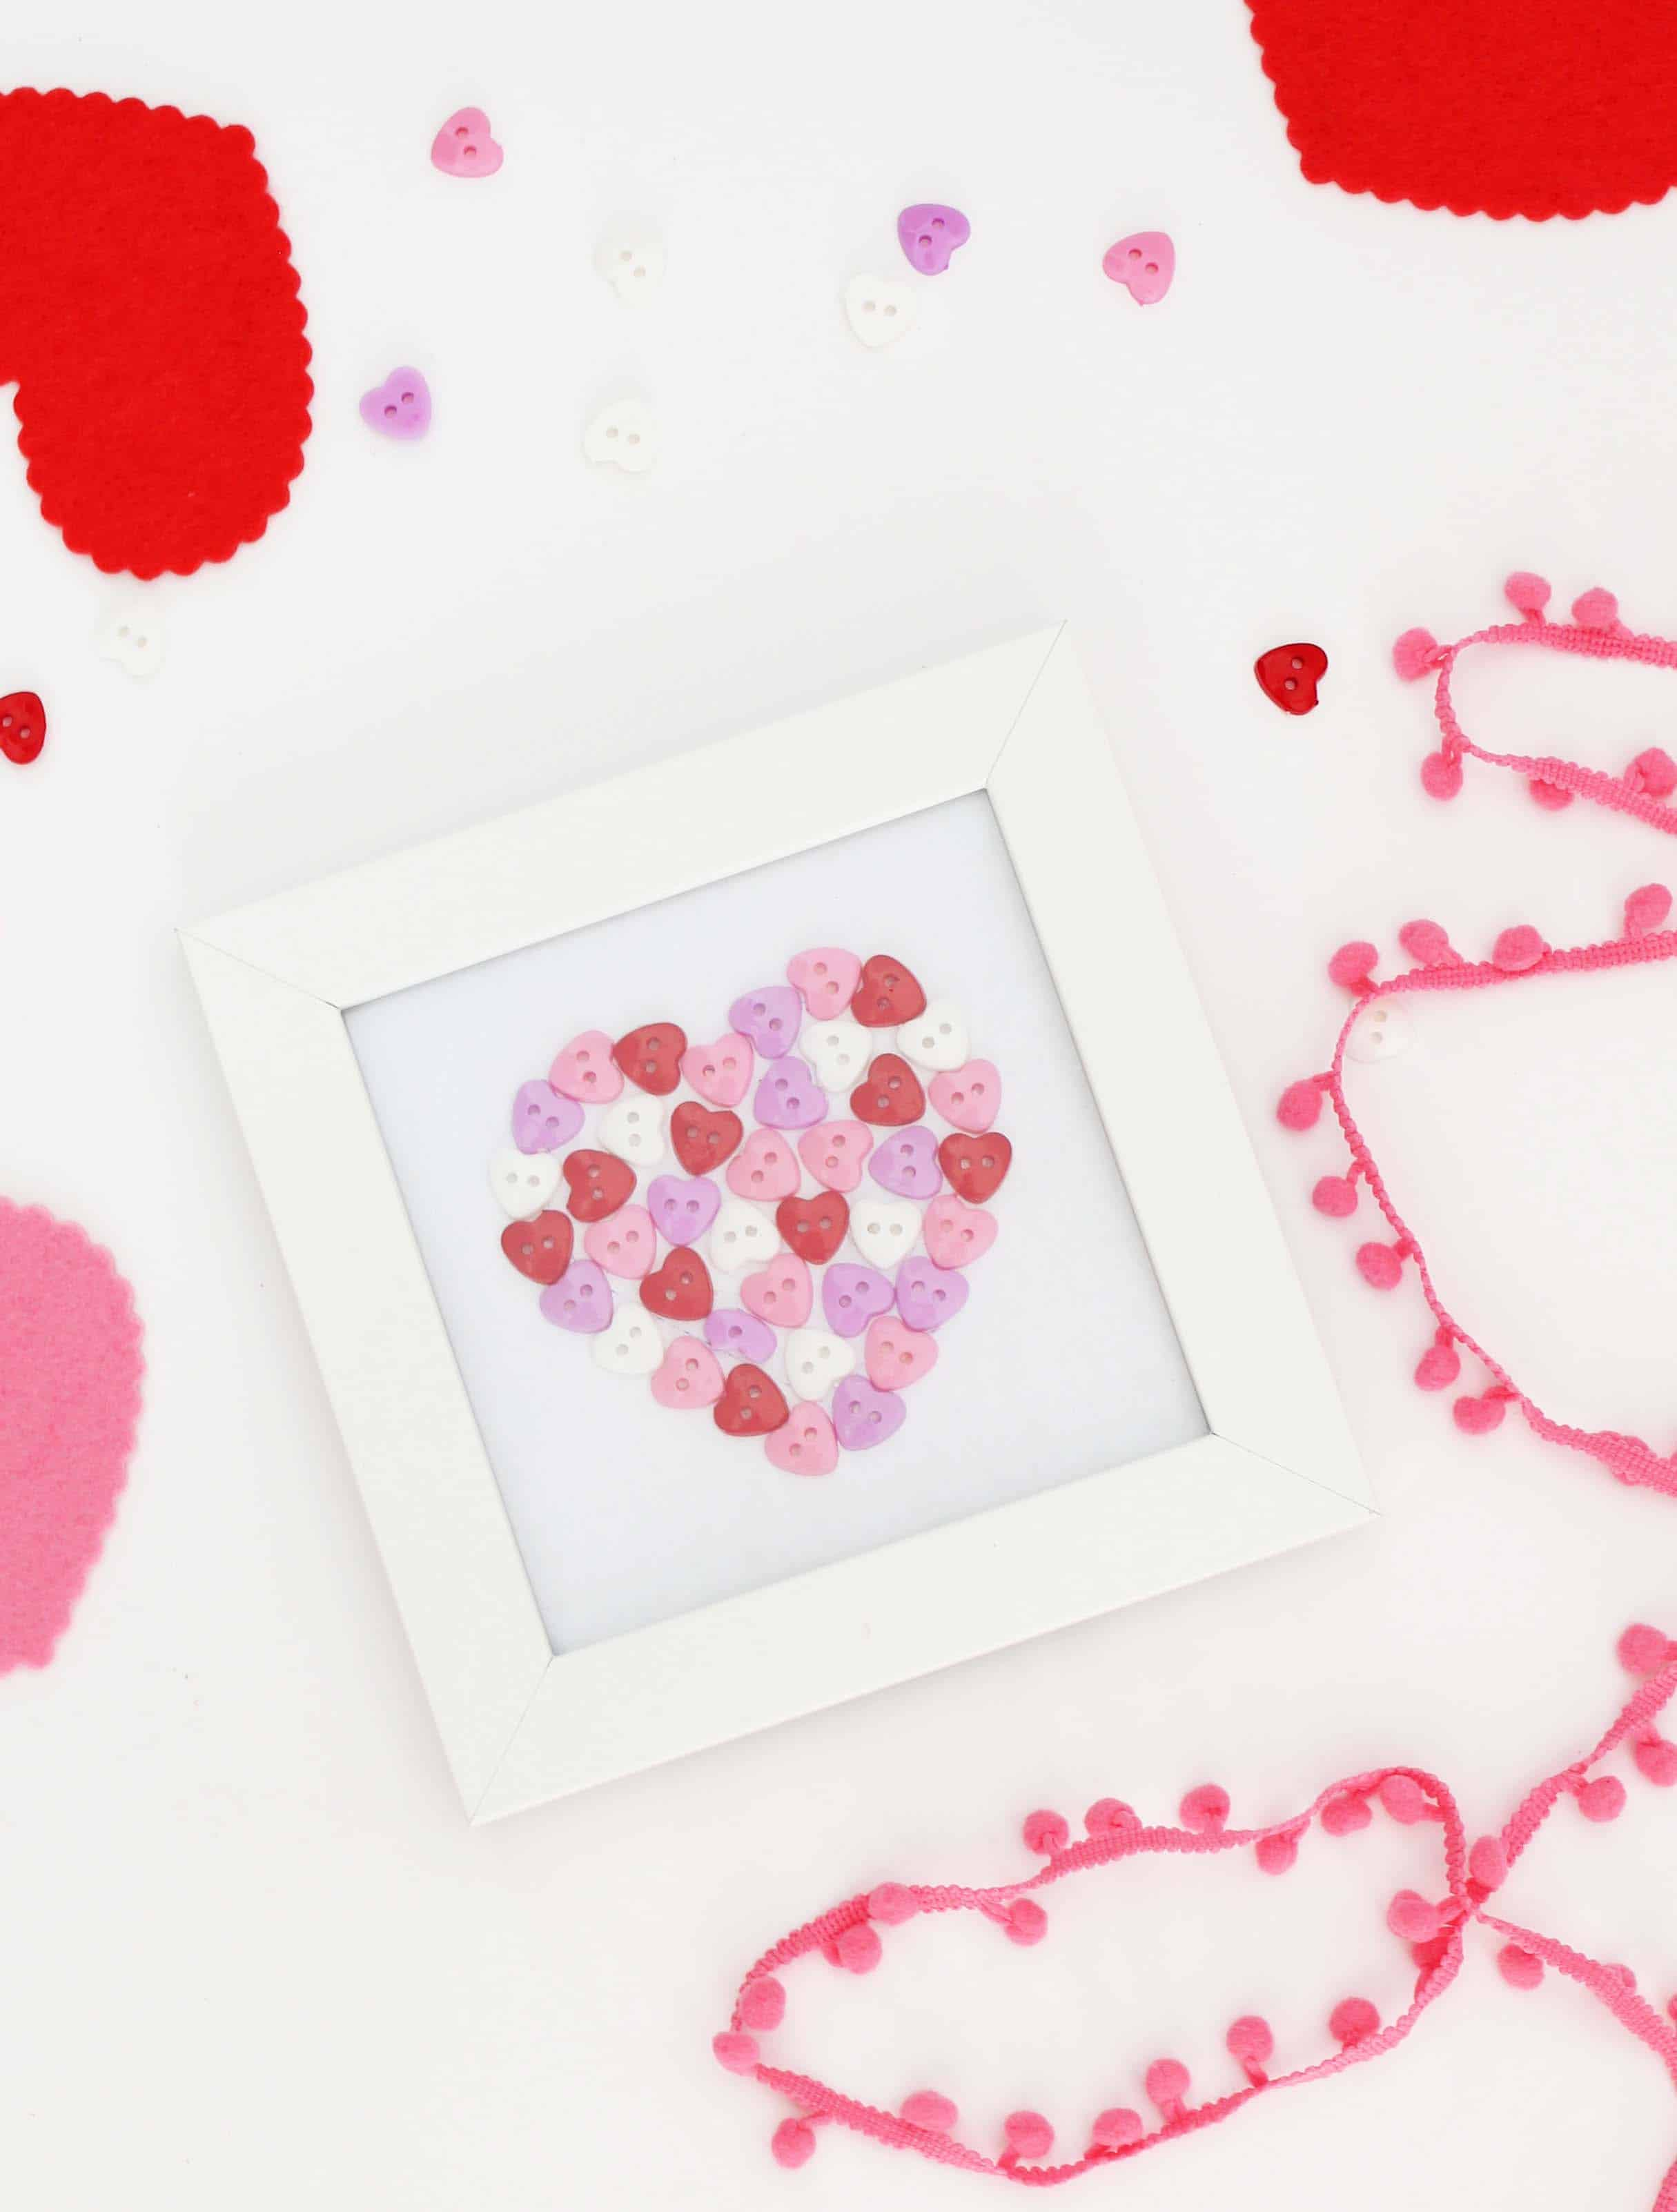 heart art made out of buttons in white picture frame